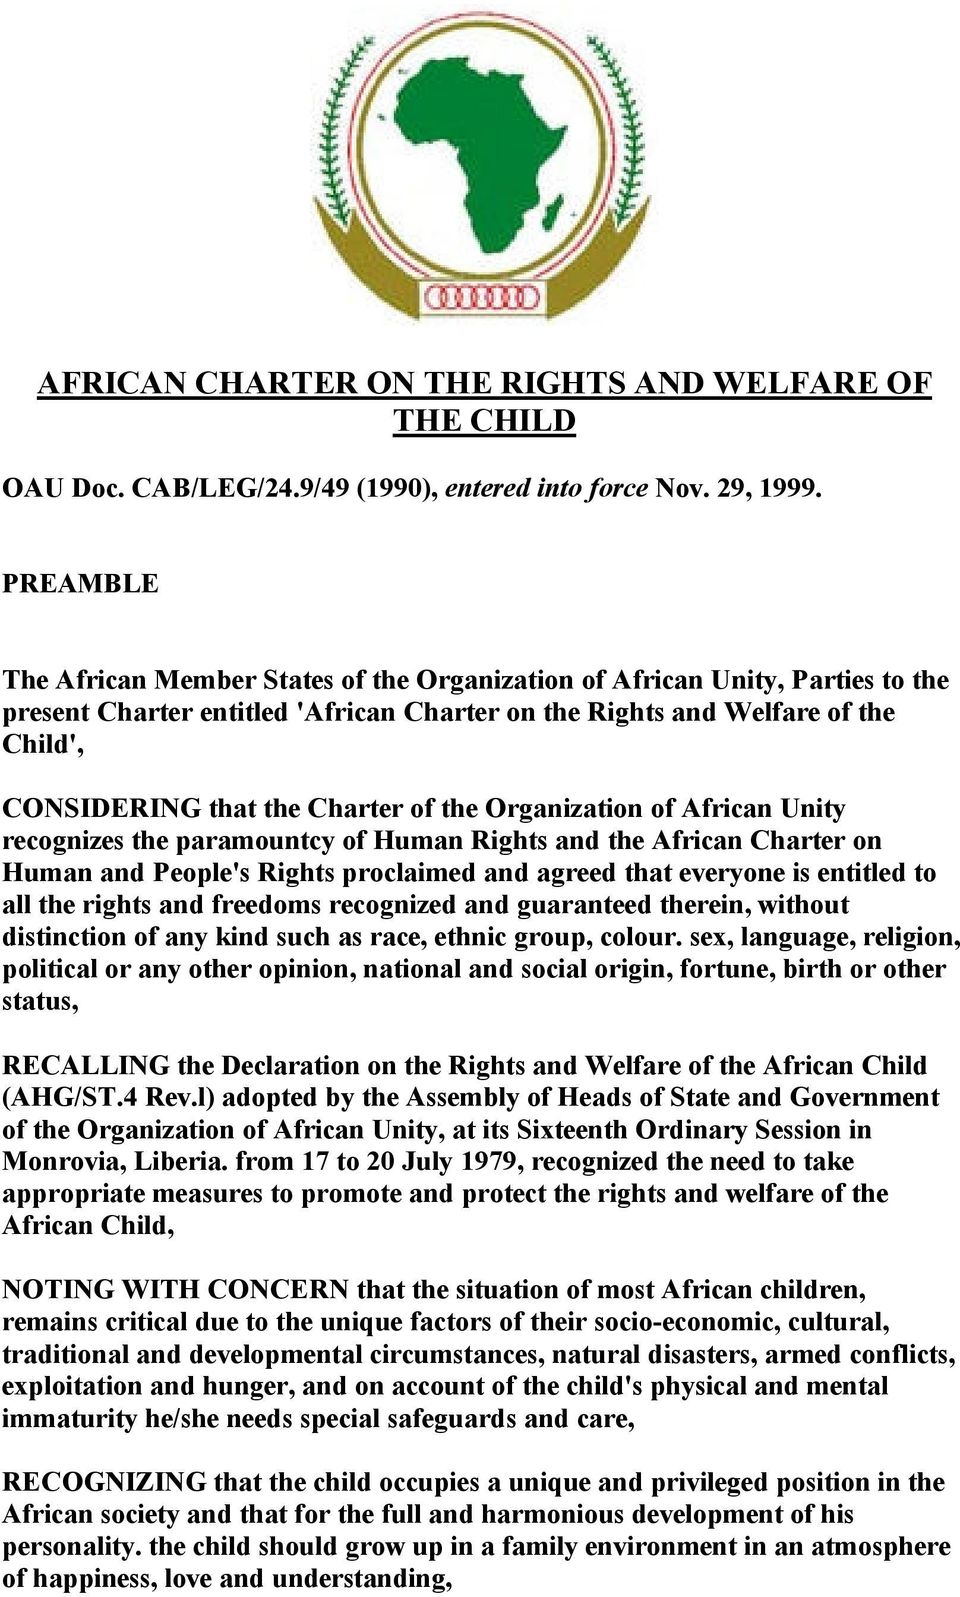 of the Organization of African Unity recognizes the paramountcy of Human Rights and the African Charter on Human and People's Rights proclaimed and agreed that everyone is entitled to all the rights